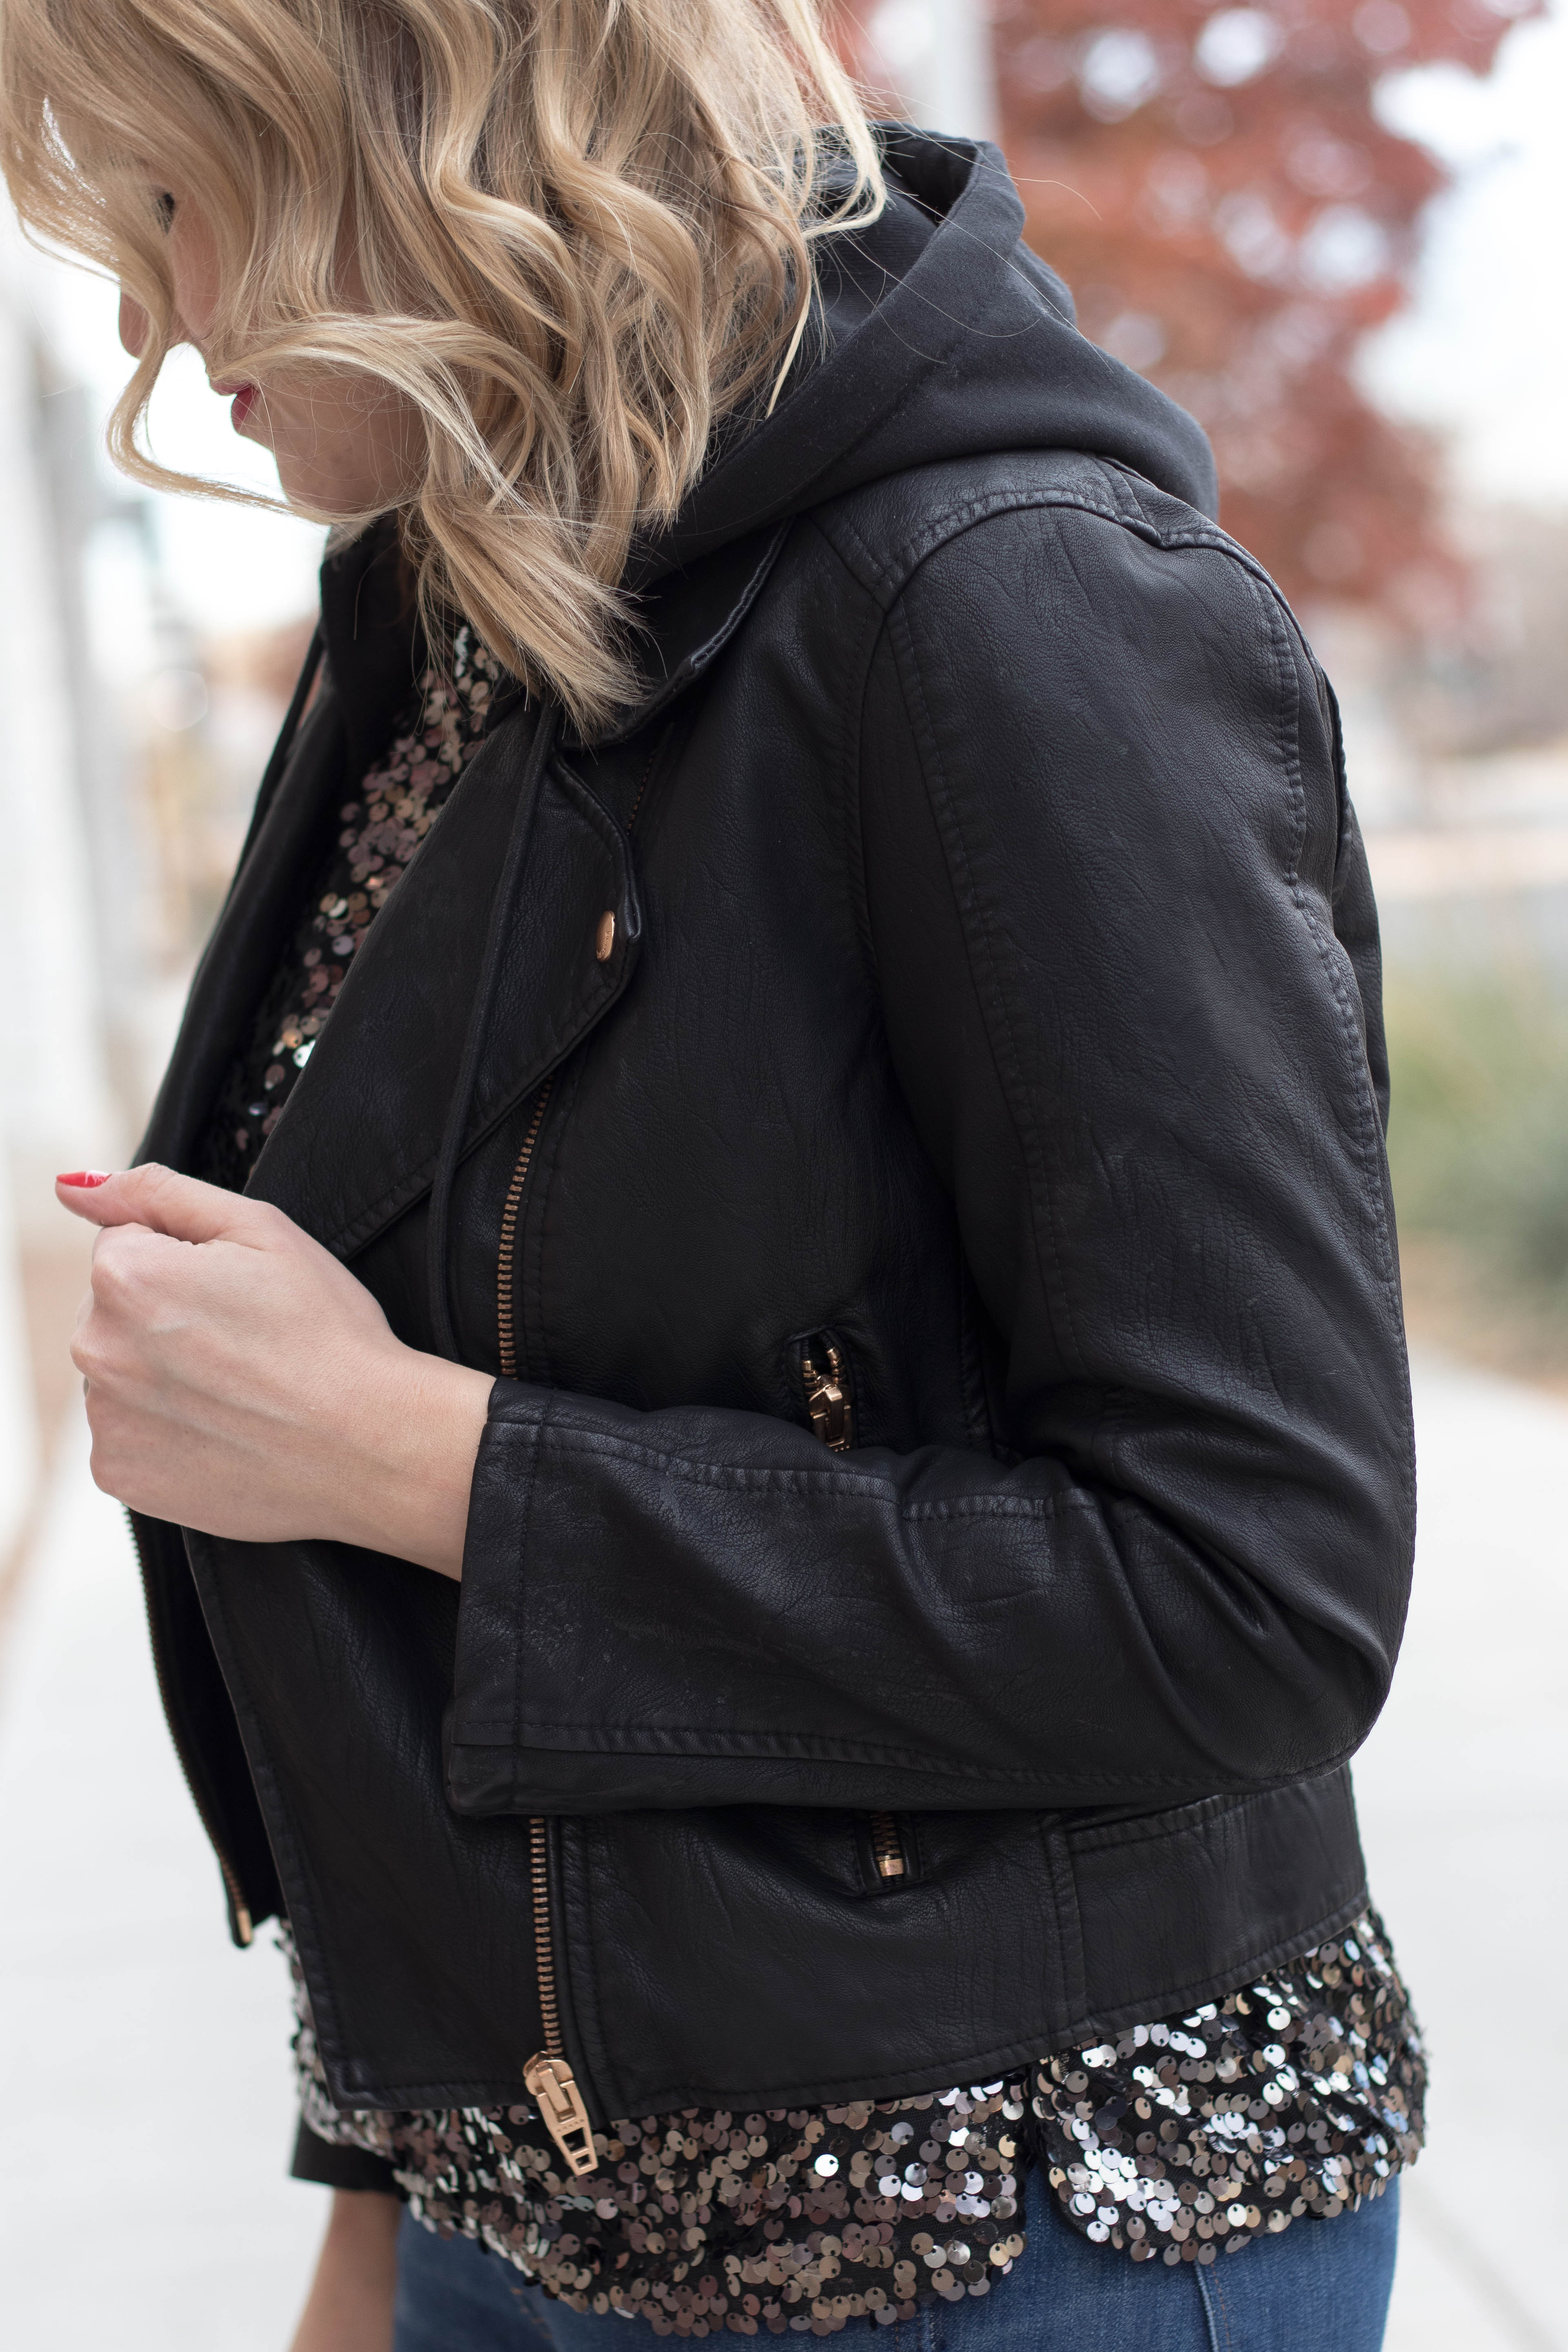 blank NYC Moto jacket with hood #blanknyc #outfitdetails #leatherjacket